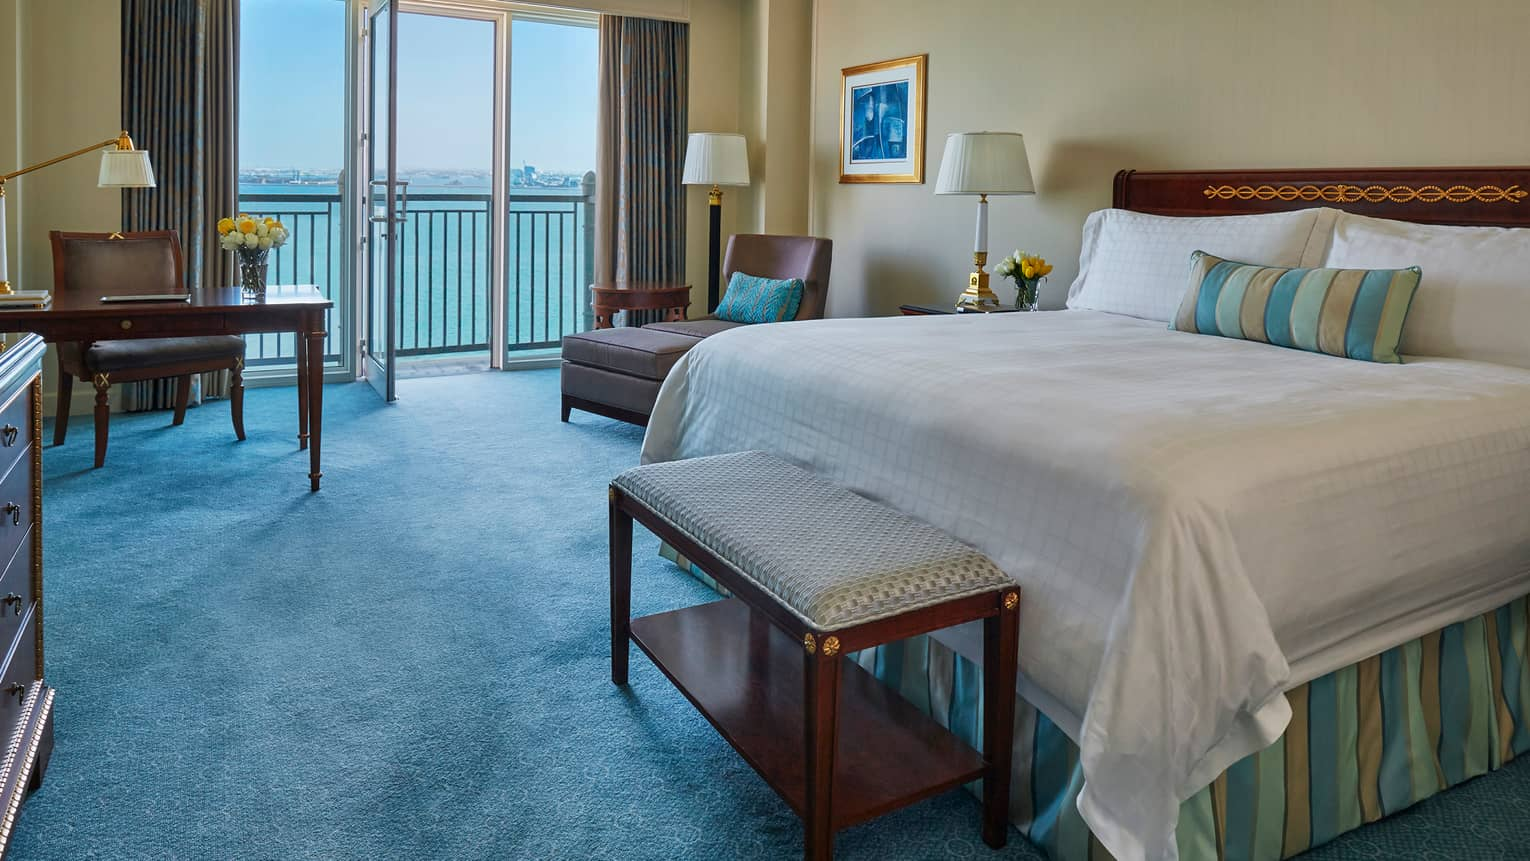 Premier Room with open glass balcony door, ocean view, blue carpet, bed with striped accent pillow